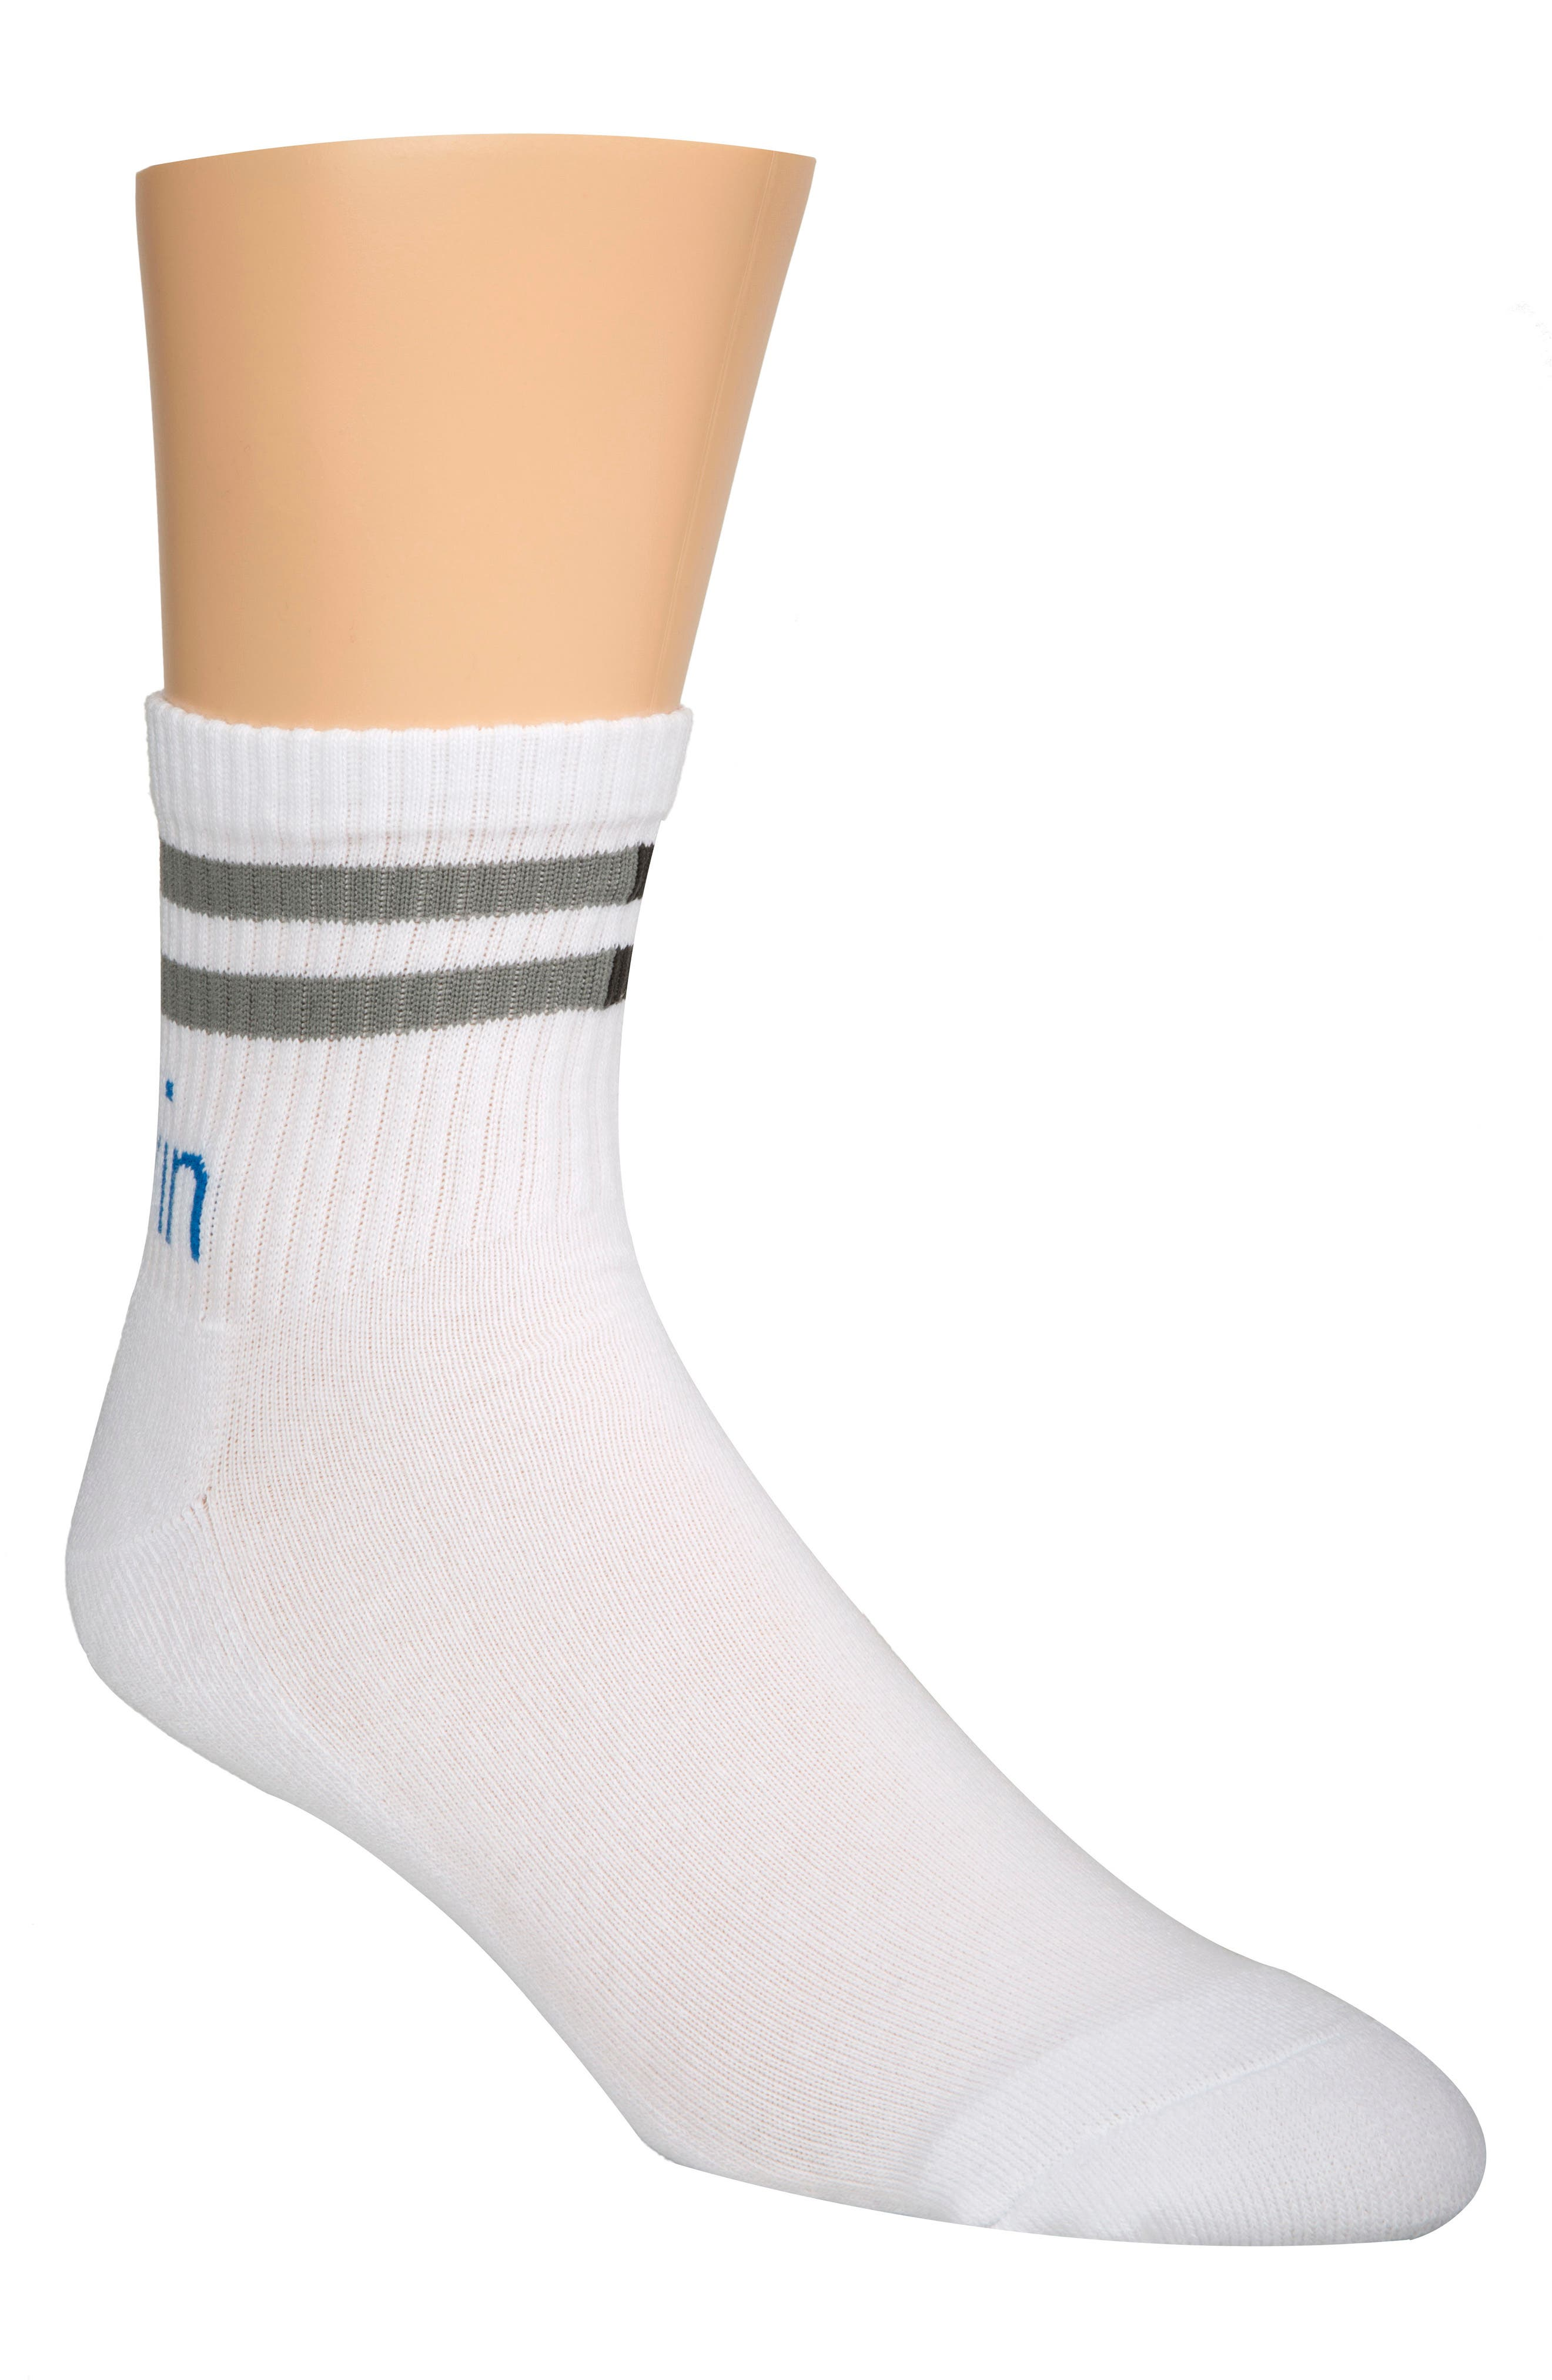 Logo Crew Socks,                             Main thumbnail 1, color,                             White